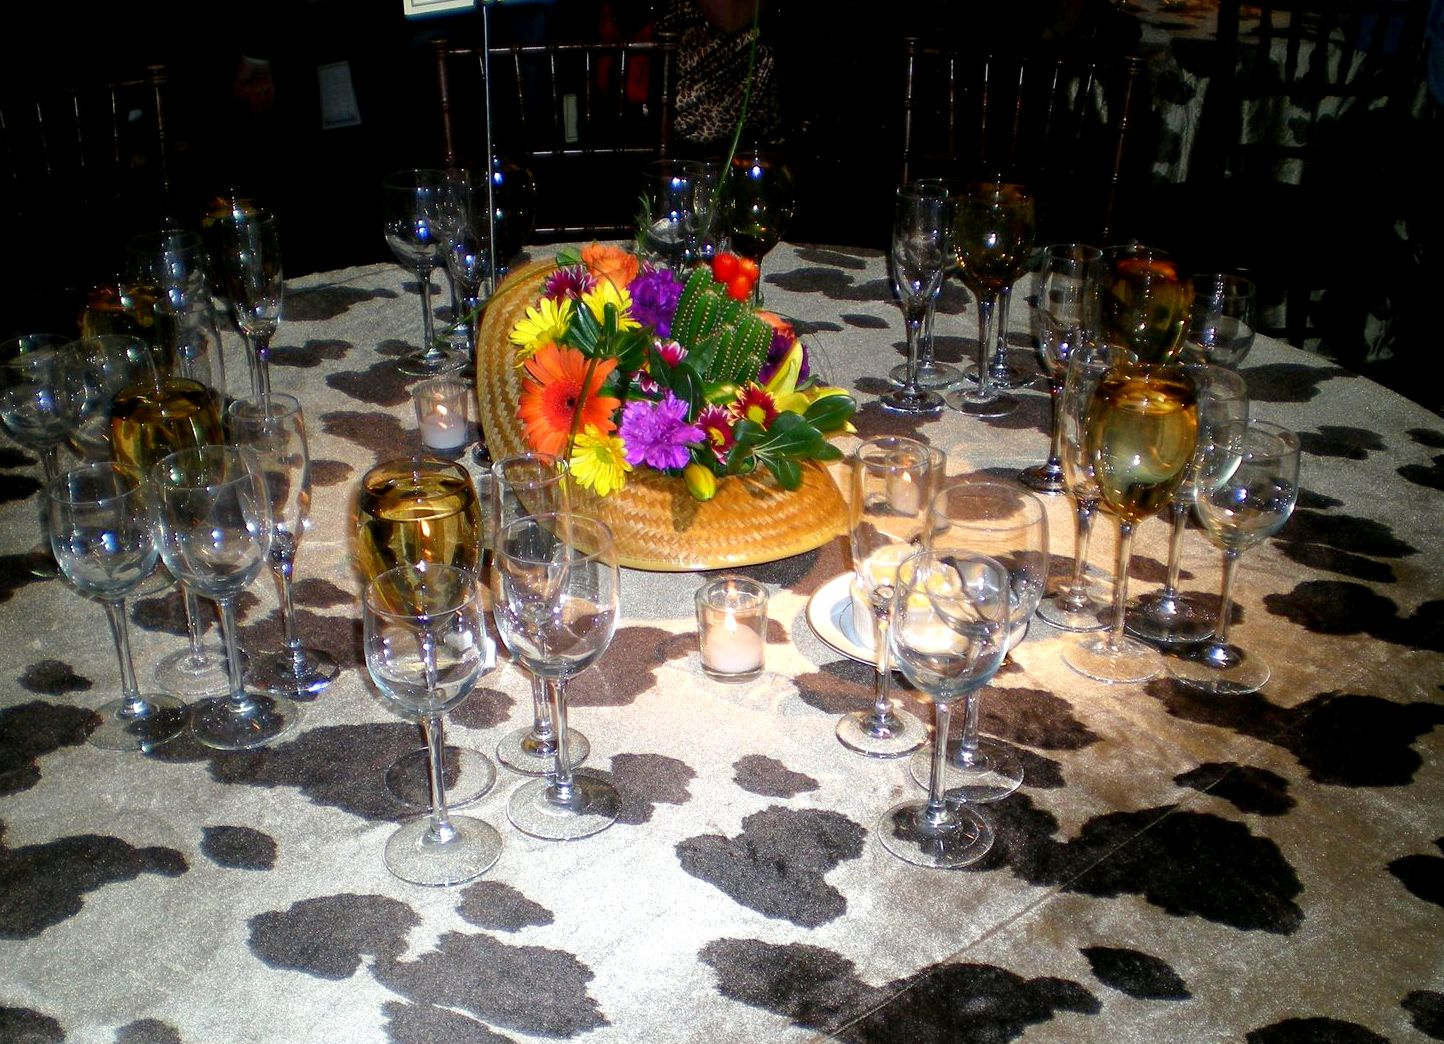 Western table decorations for a wedding photograph